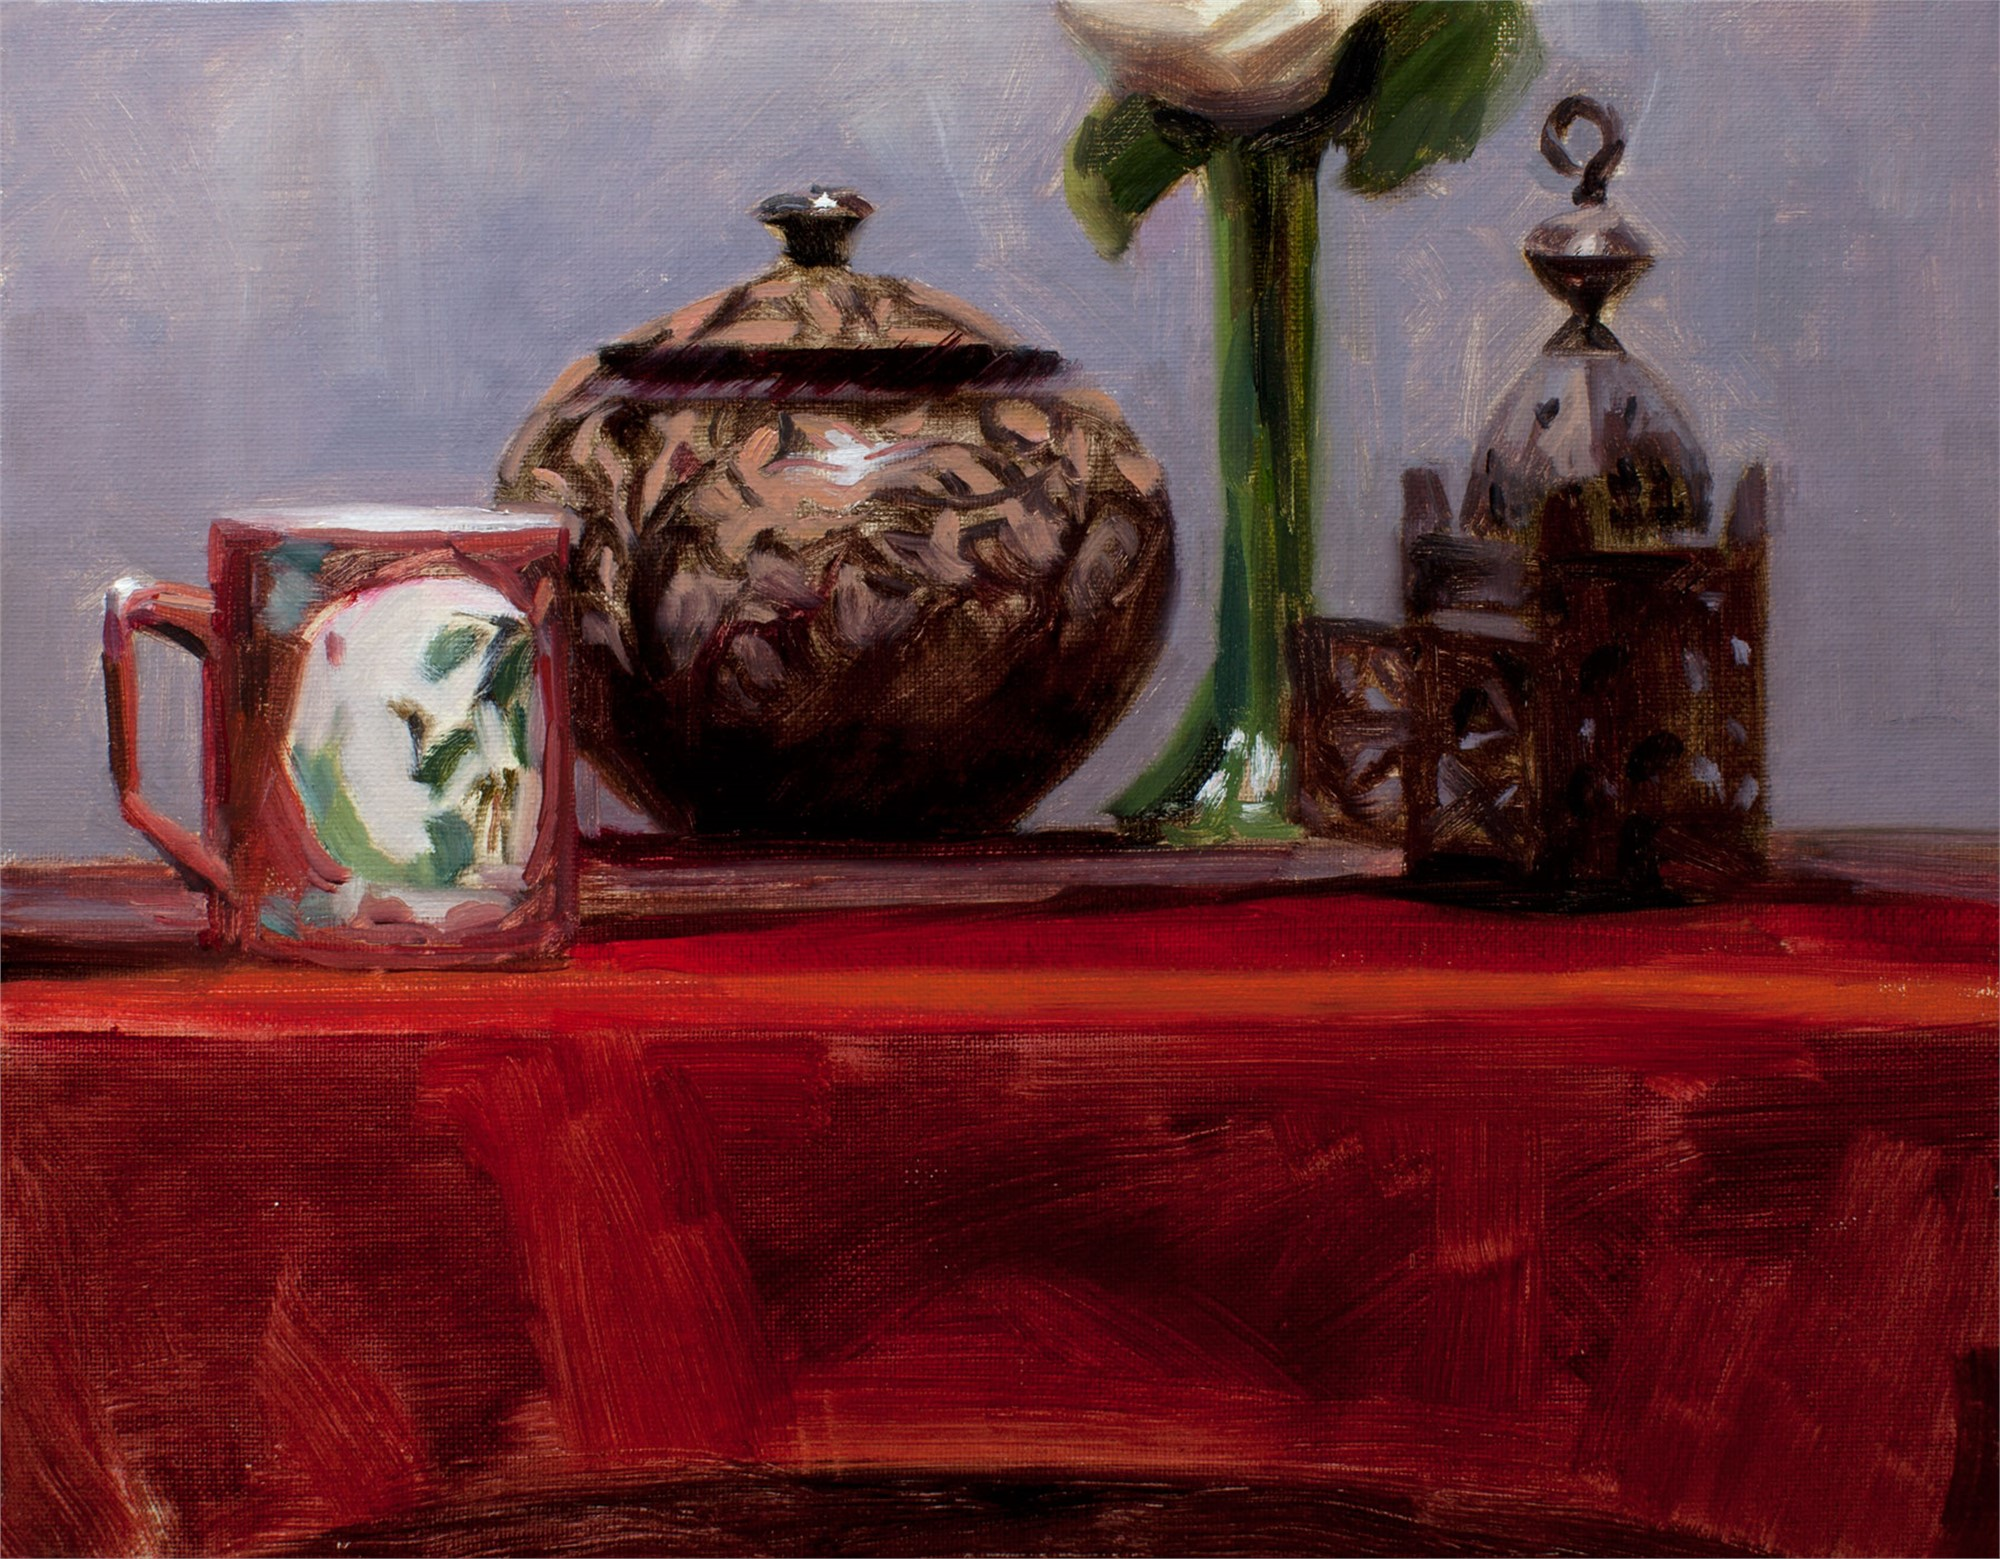 Still Life II by Kate Sammons